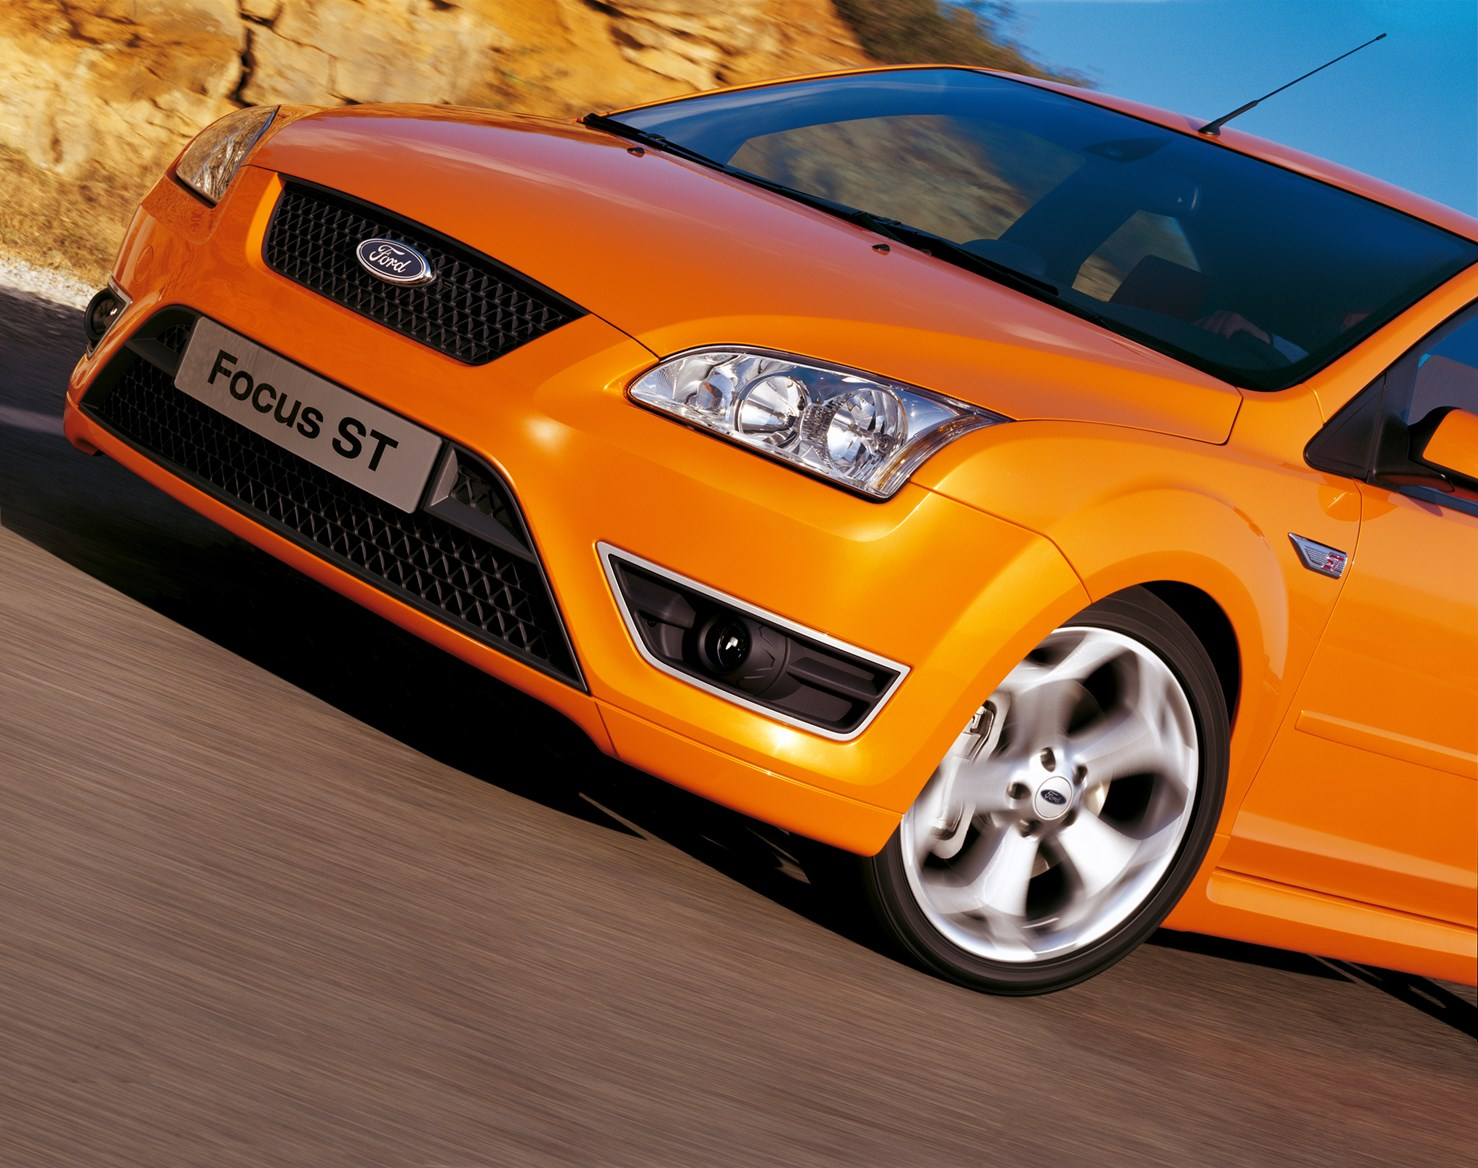 Used Ford Focus St 2006 2010 Review Parkers